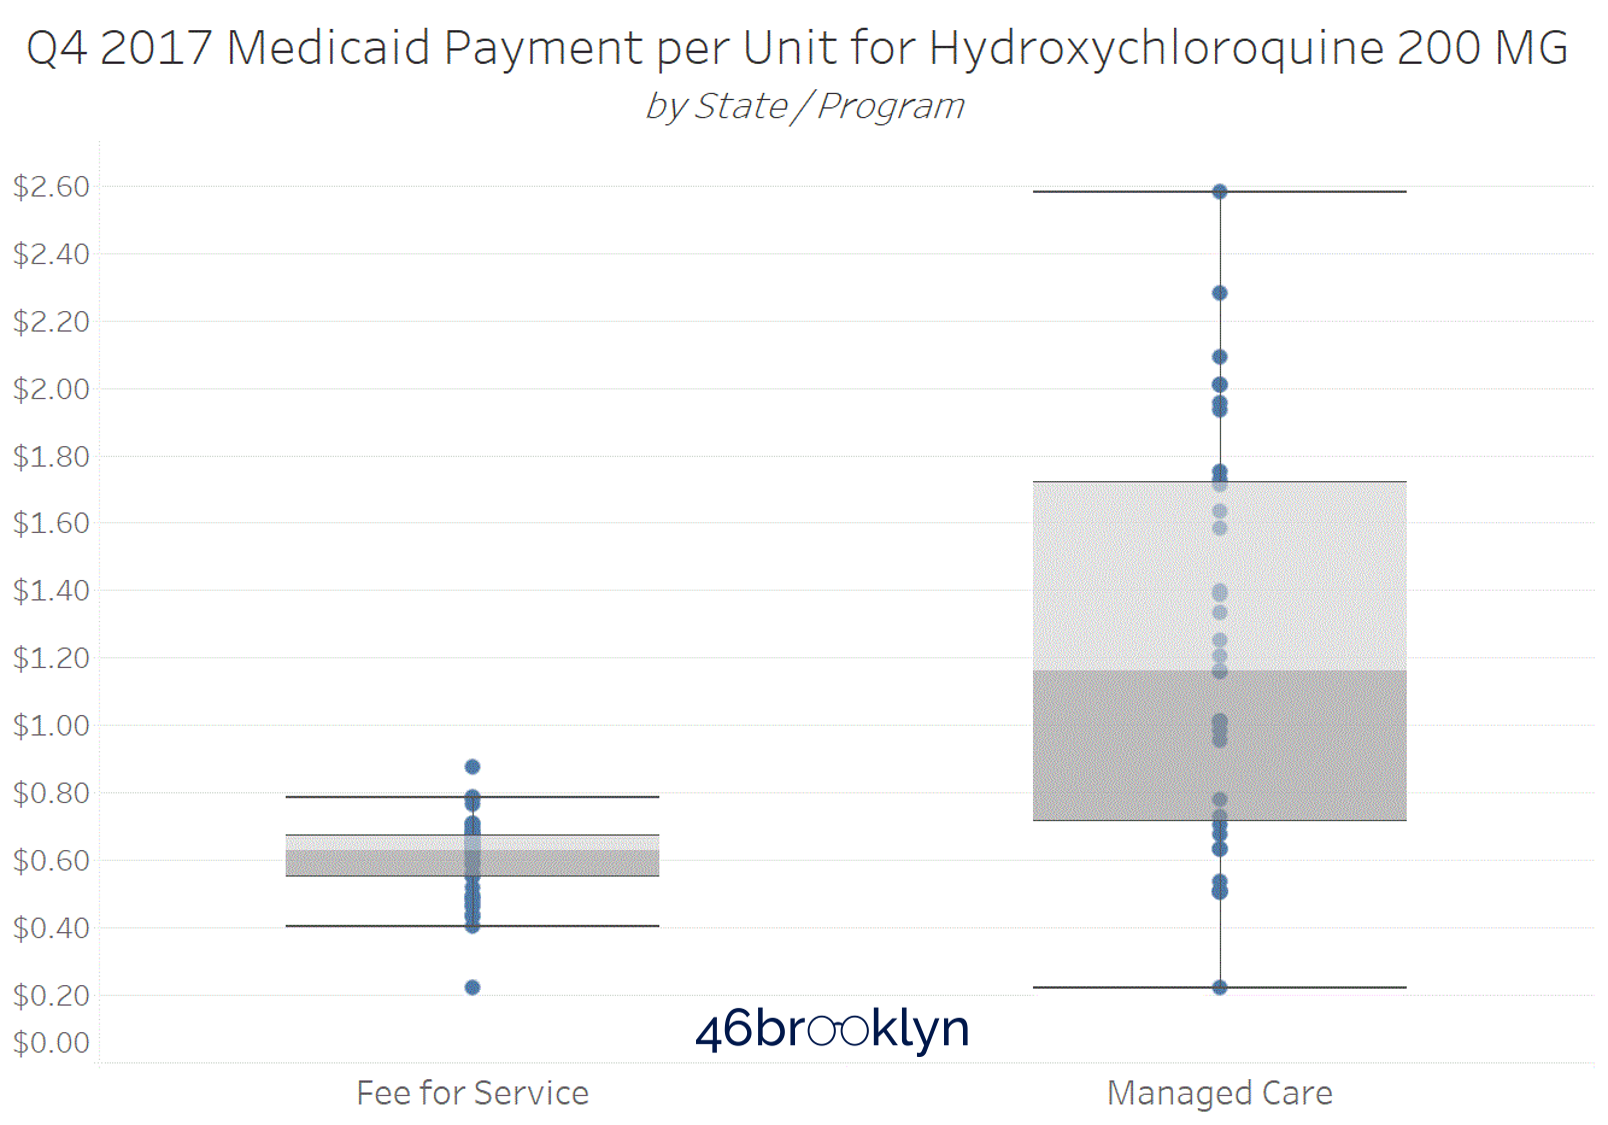 Hydroxychloroquine: What goes up… stays up? — 46brooklyn